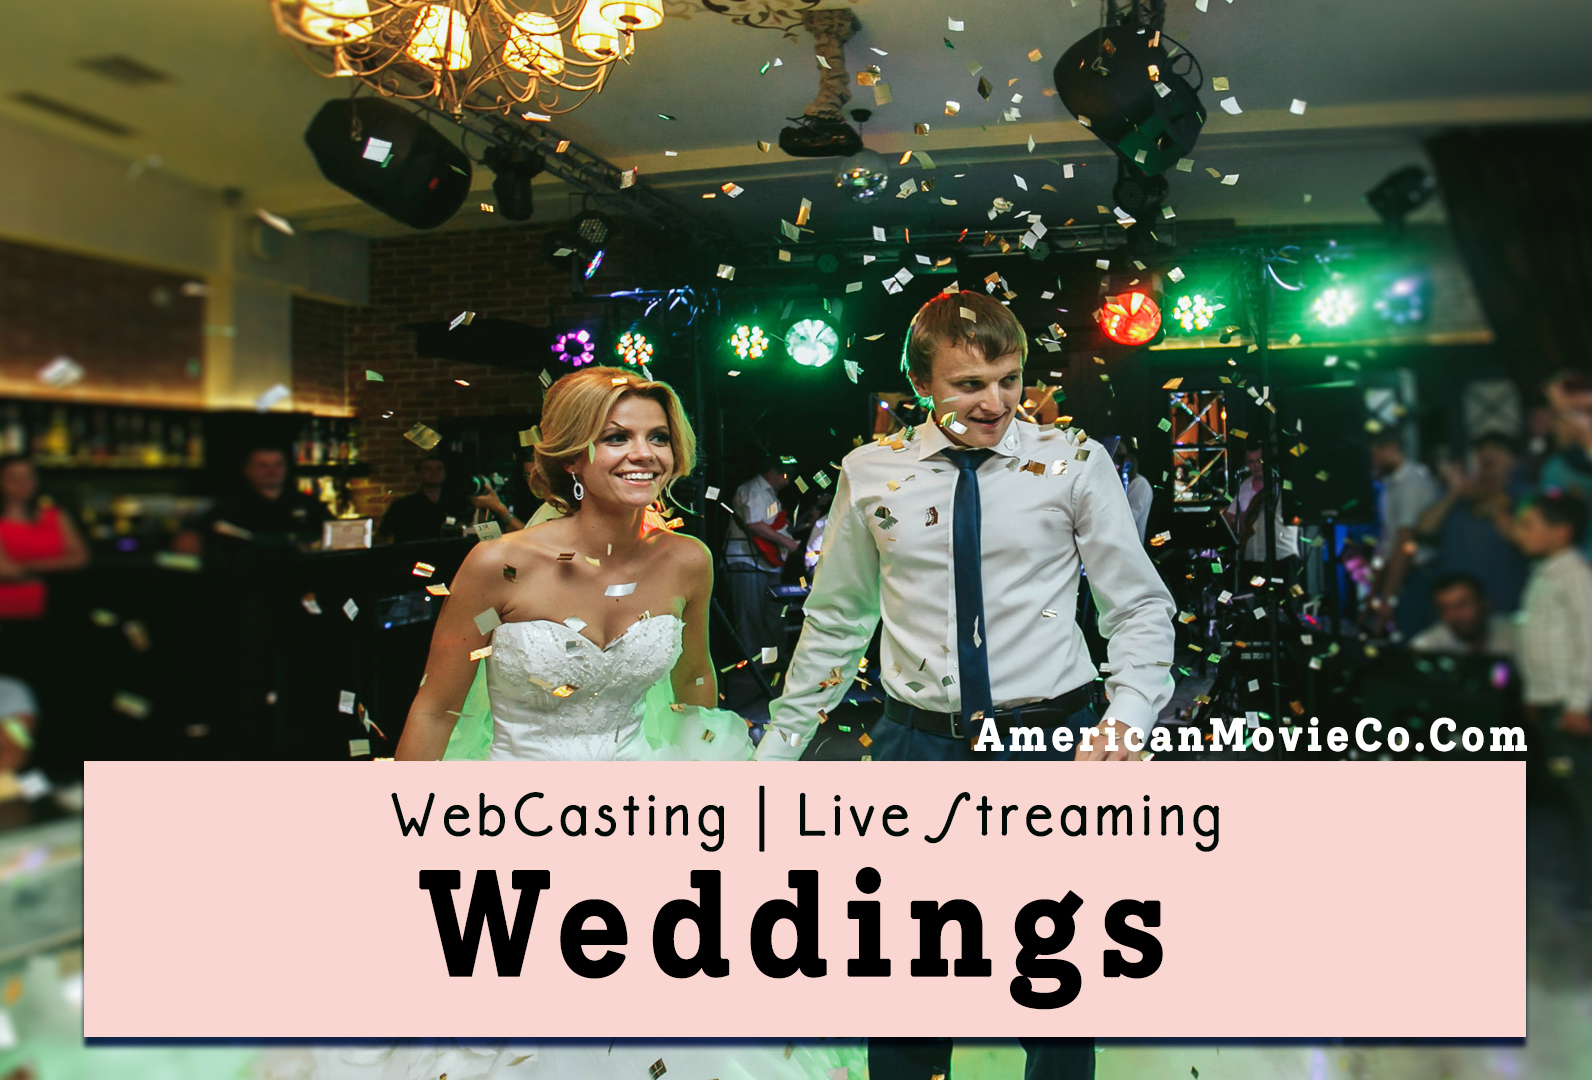 WebCasting | Live Streaming - Wedding